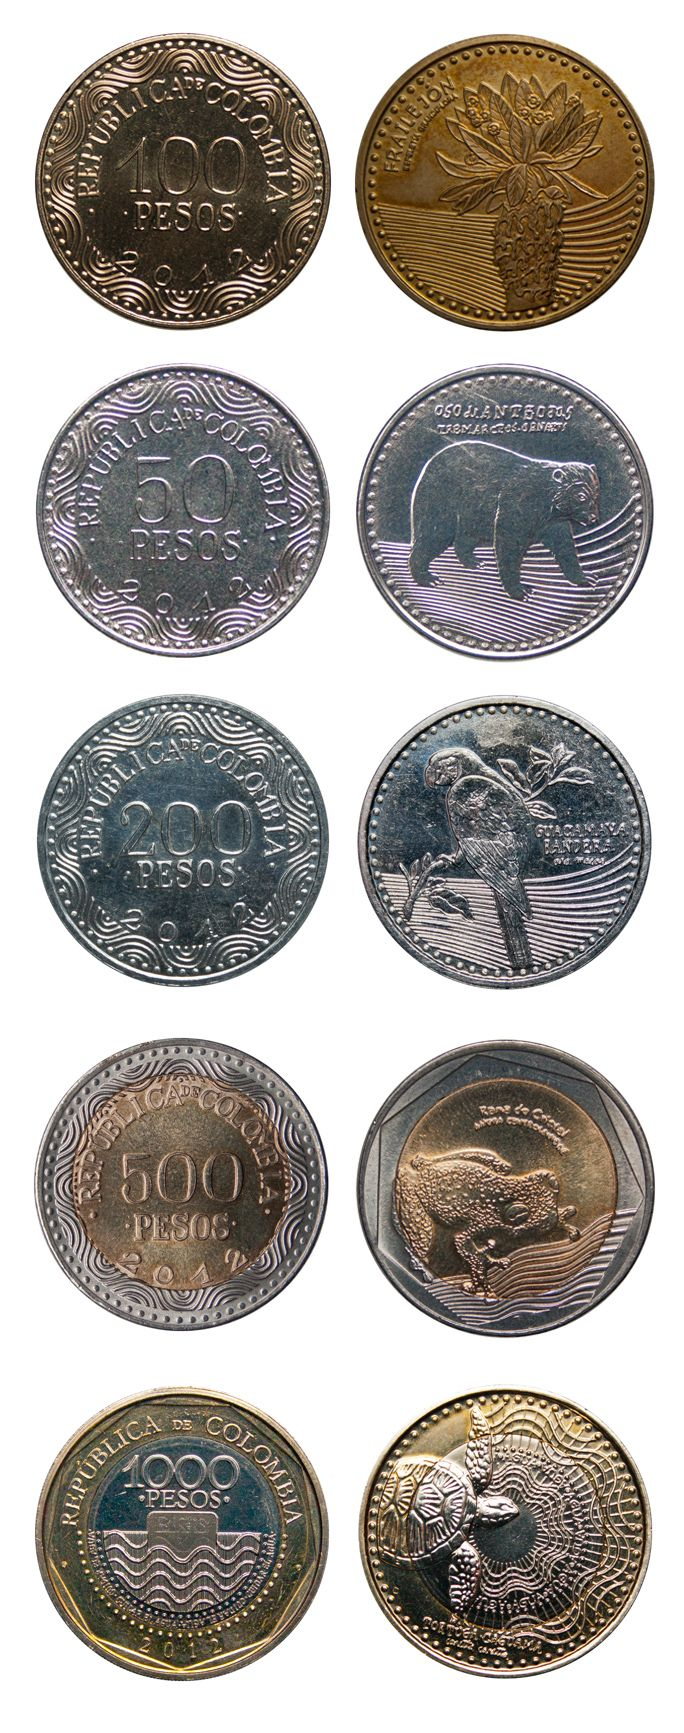 Colombian coins - Monedas colombianas